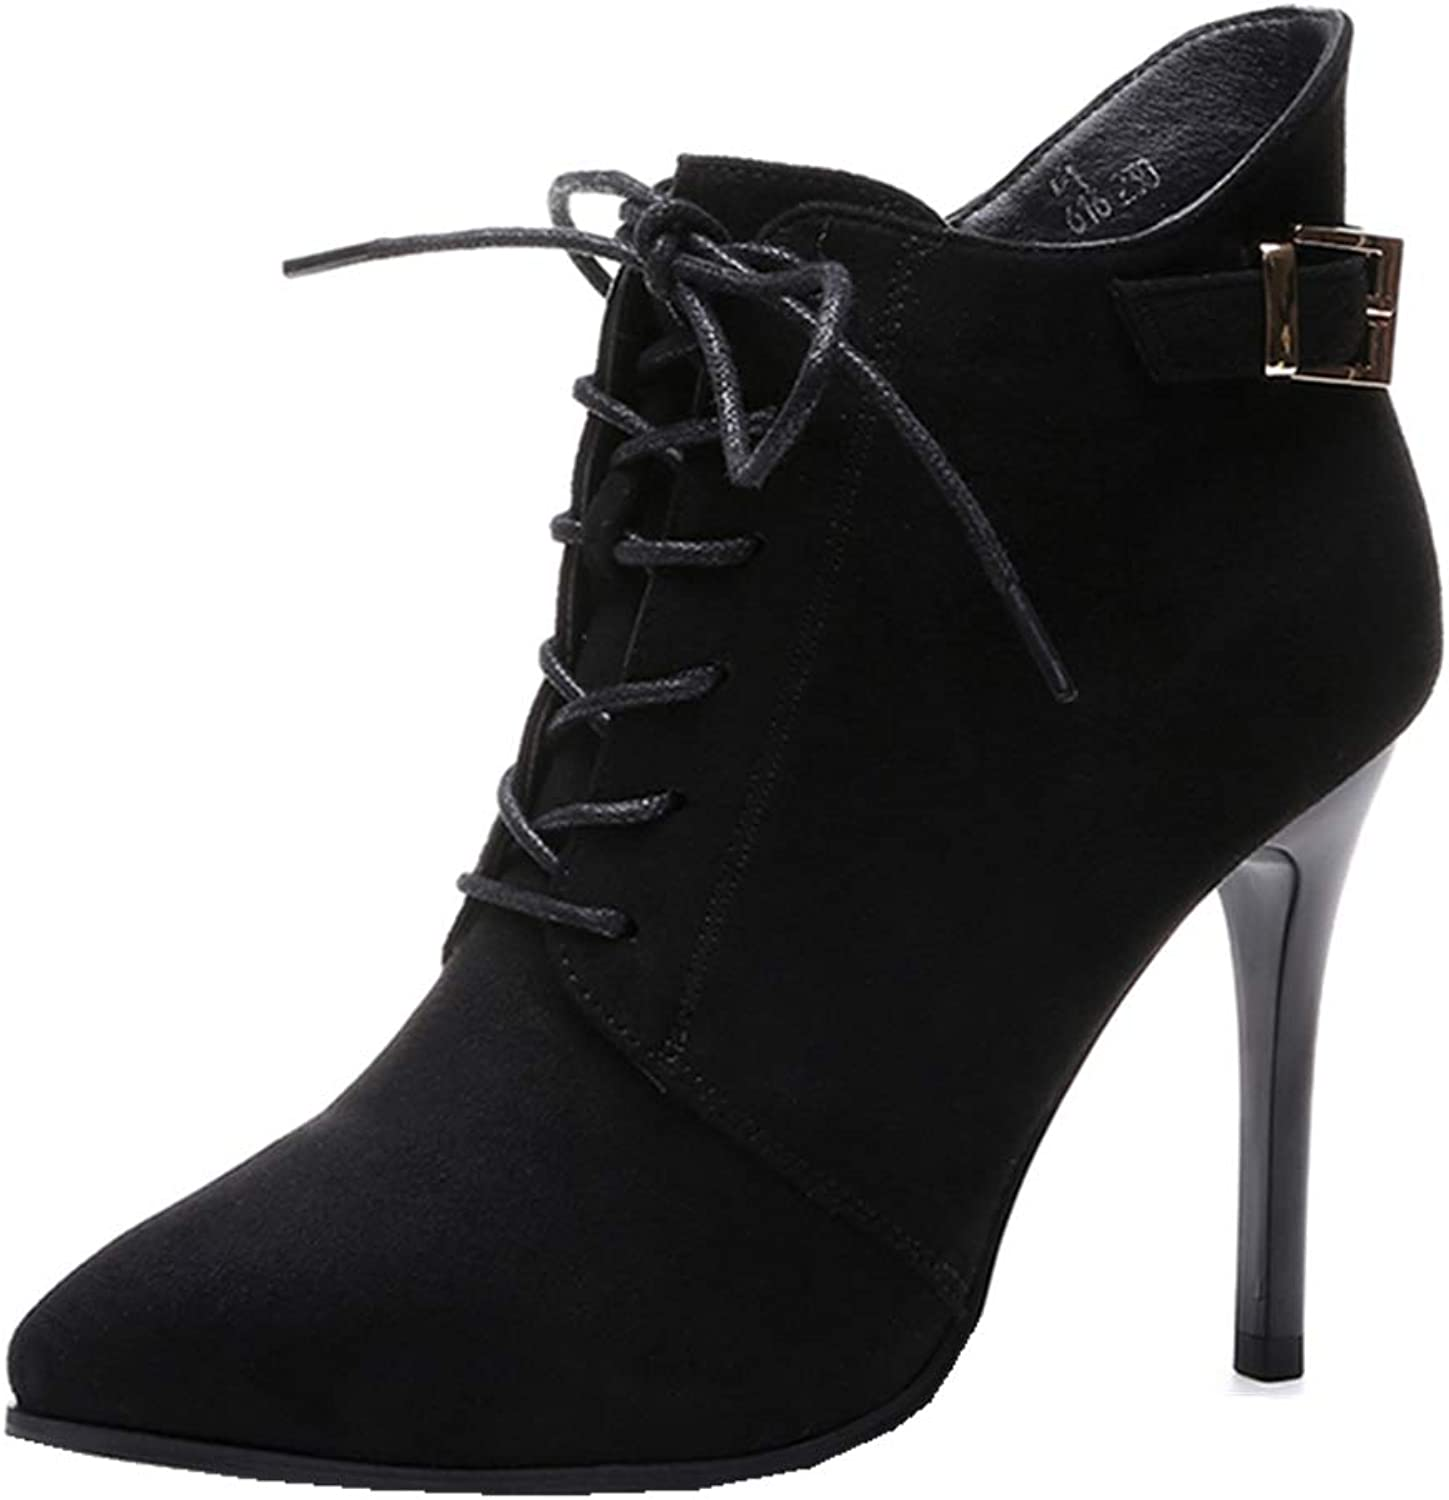 Women's Sexy Pointed Toe Stiletto Lace Up Zipper High Heels Ankle Martin Boots Black (Black, US 7)